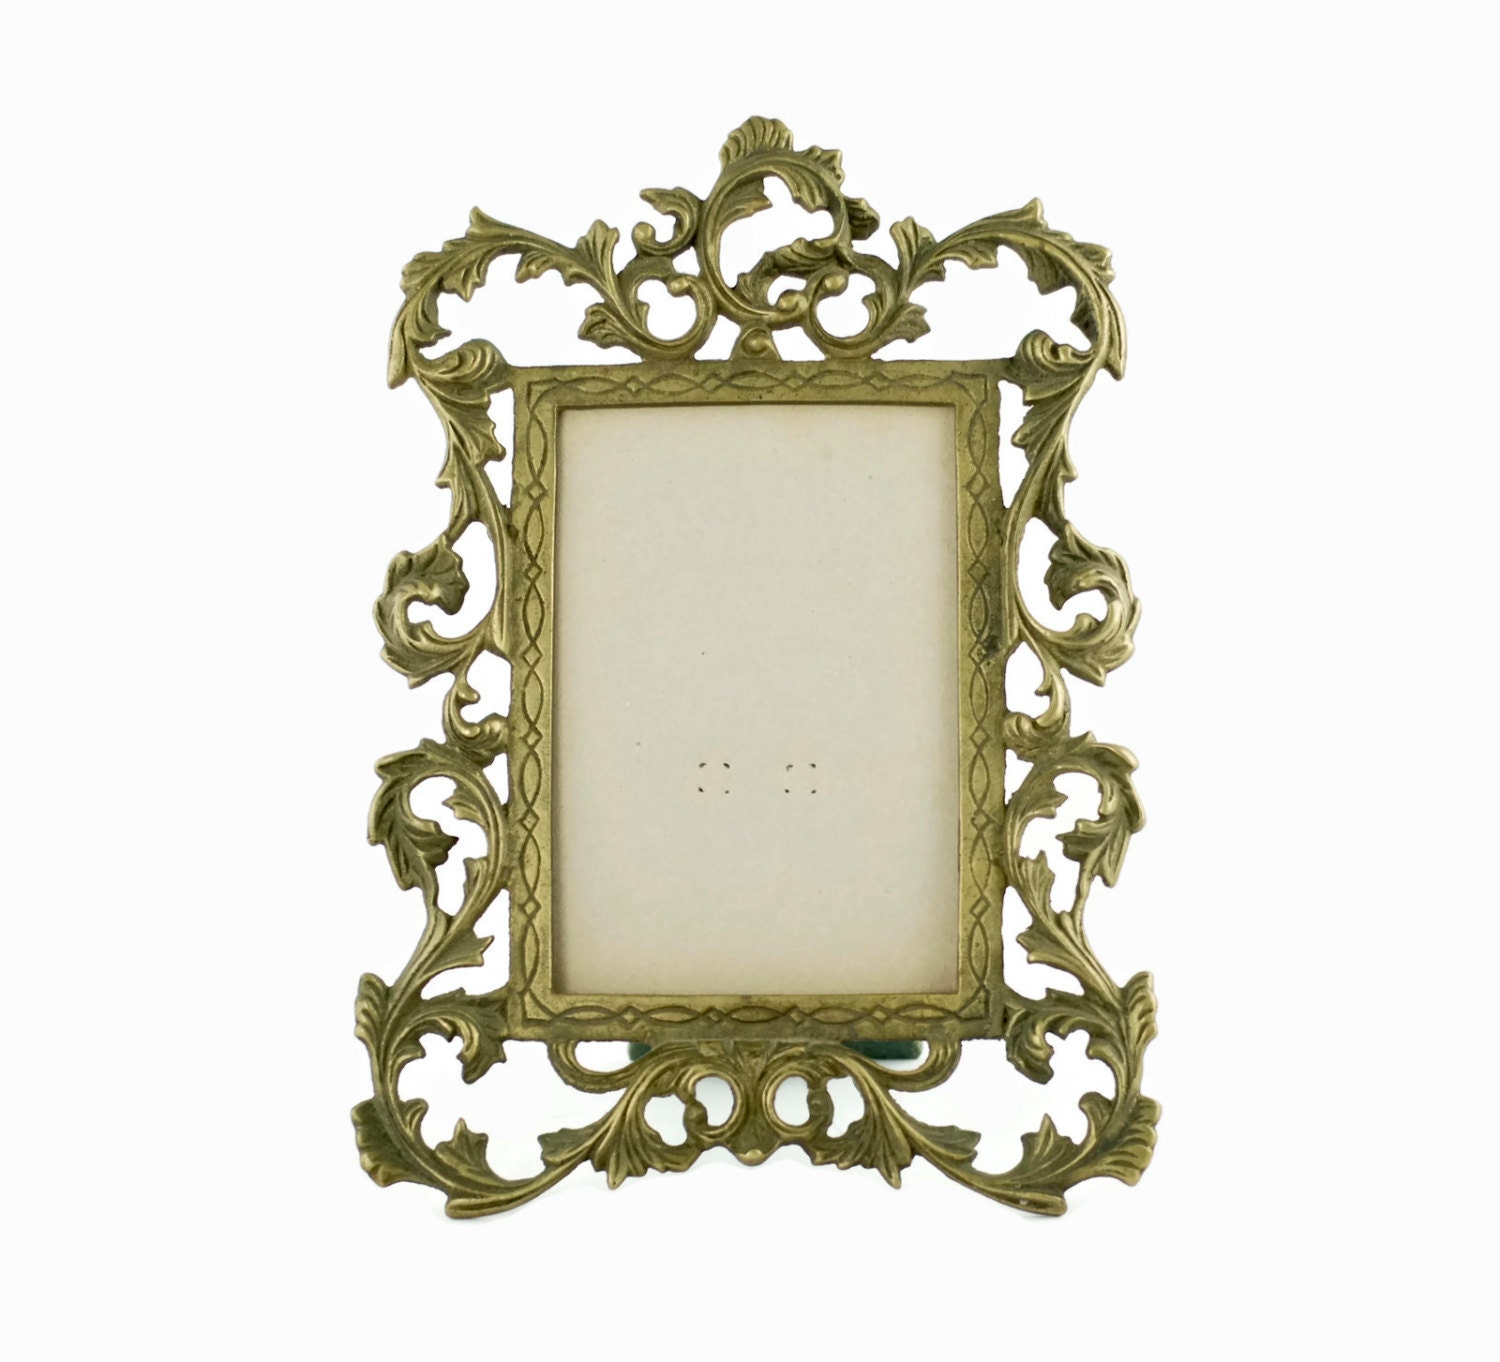 Vintage brass rococo style tabletop picture frame with description this ornate brass tabletop frame jeuxipadfo Choice Image